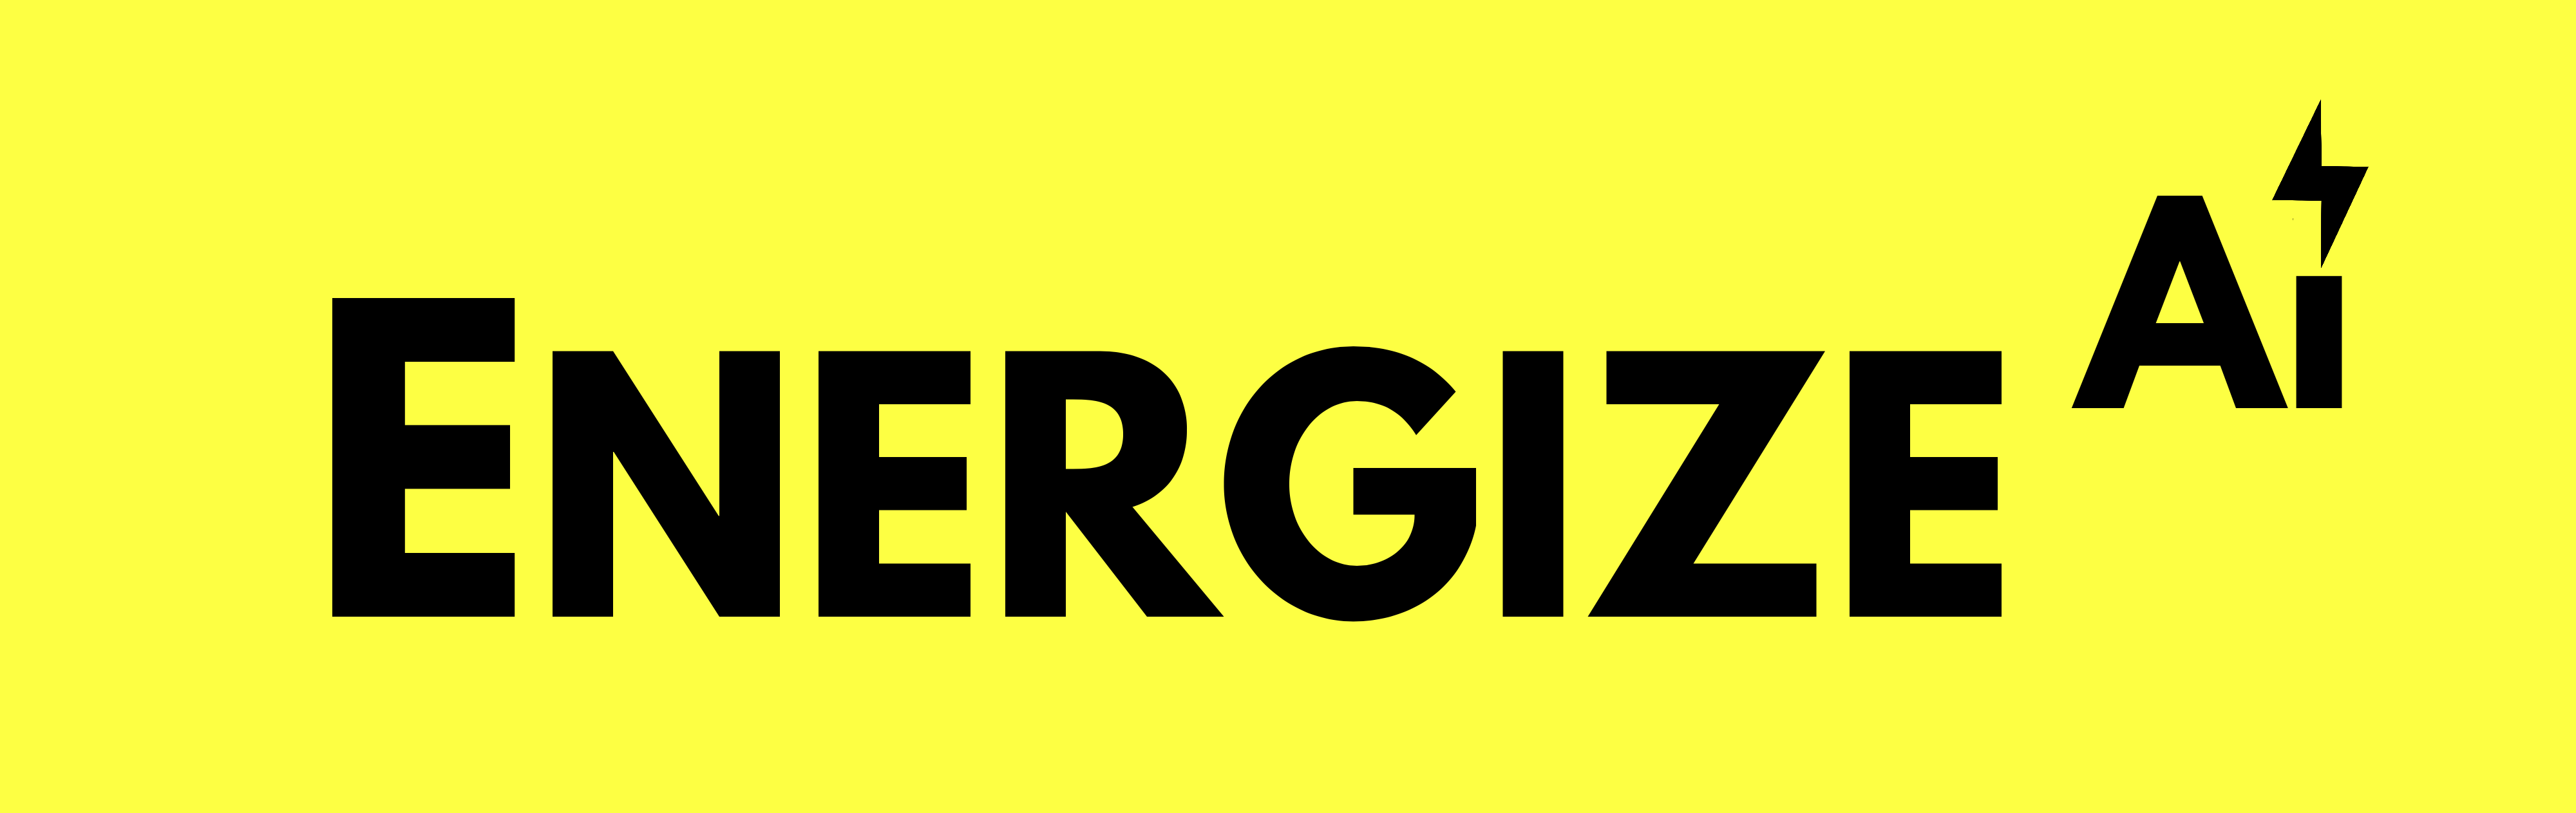 Energize.AI | Powered by Deep Learning